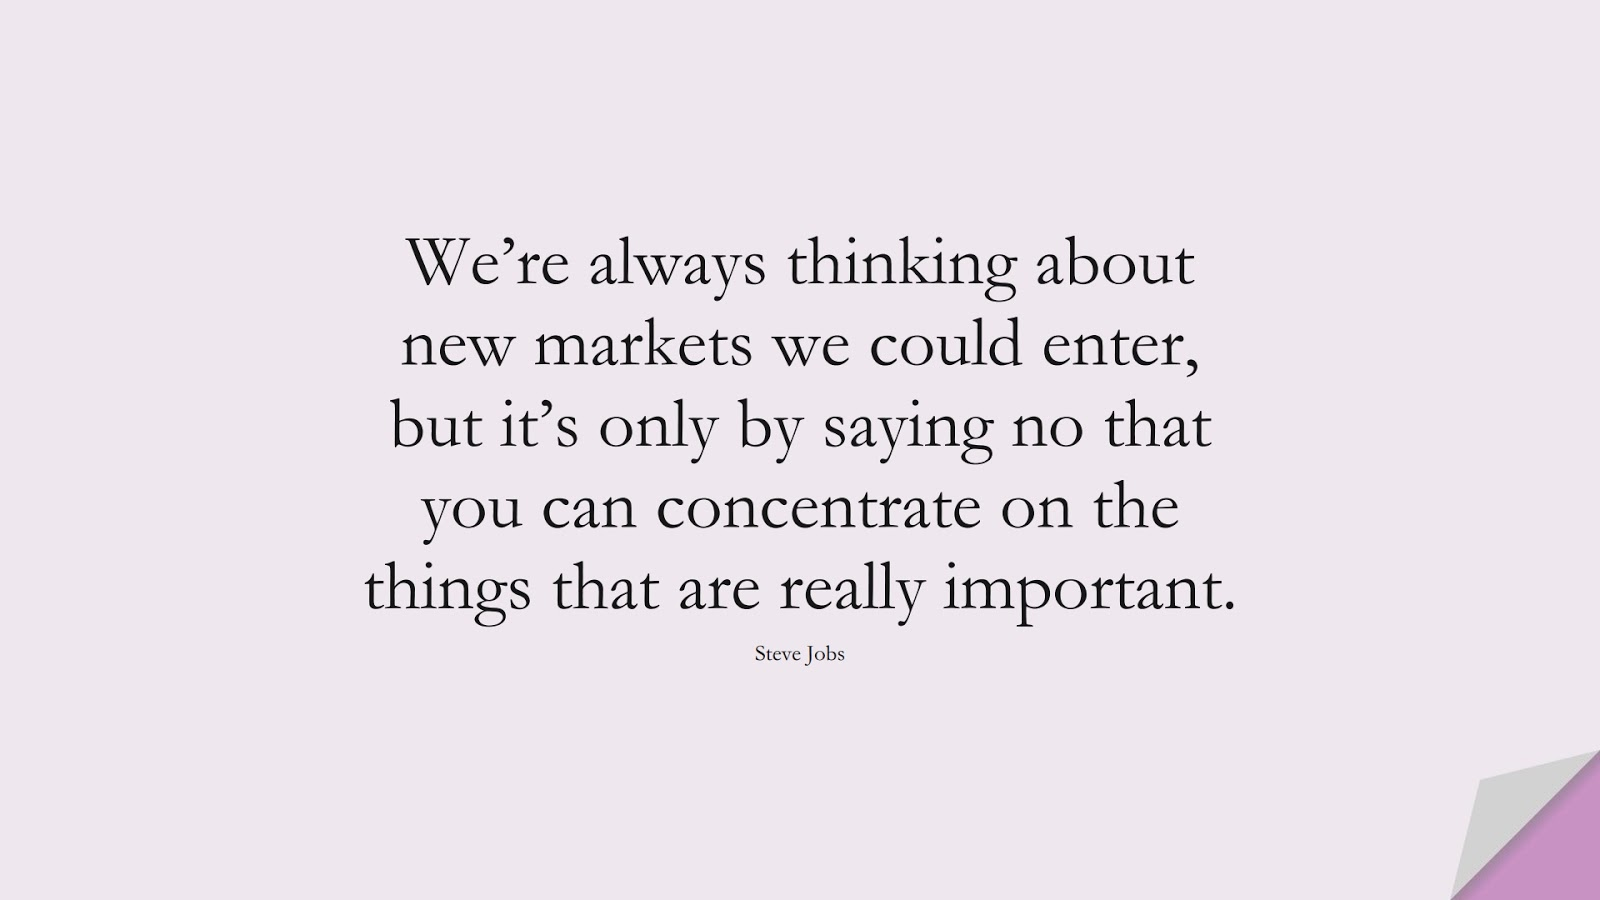 We're always thinking about new markets we could enter, but it's only by saying no that you can concentrate on the things that are really important. (Steve Jobs);  #SteveJobsQuotes